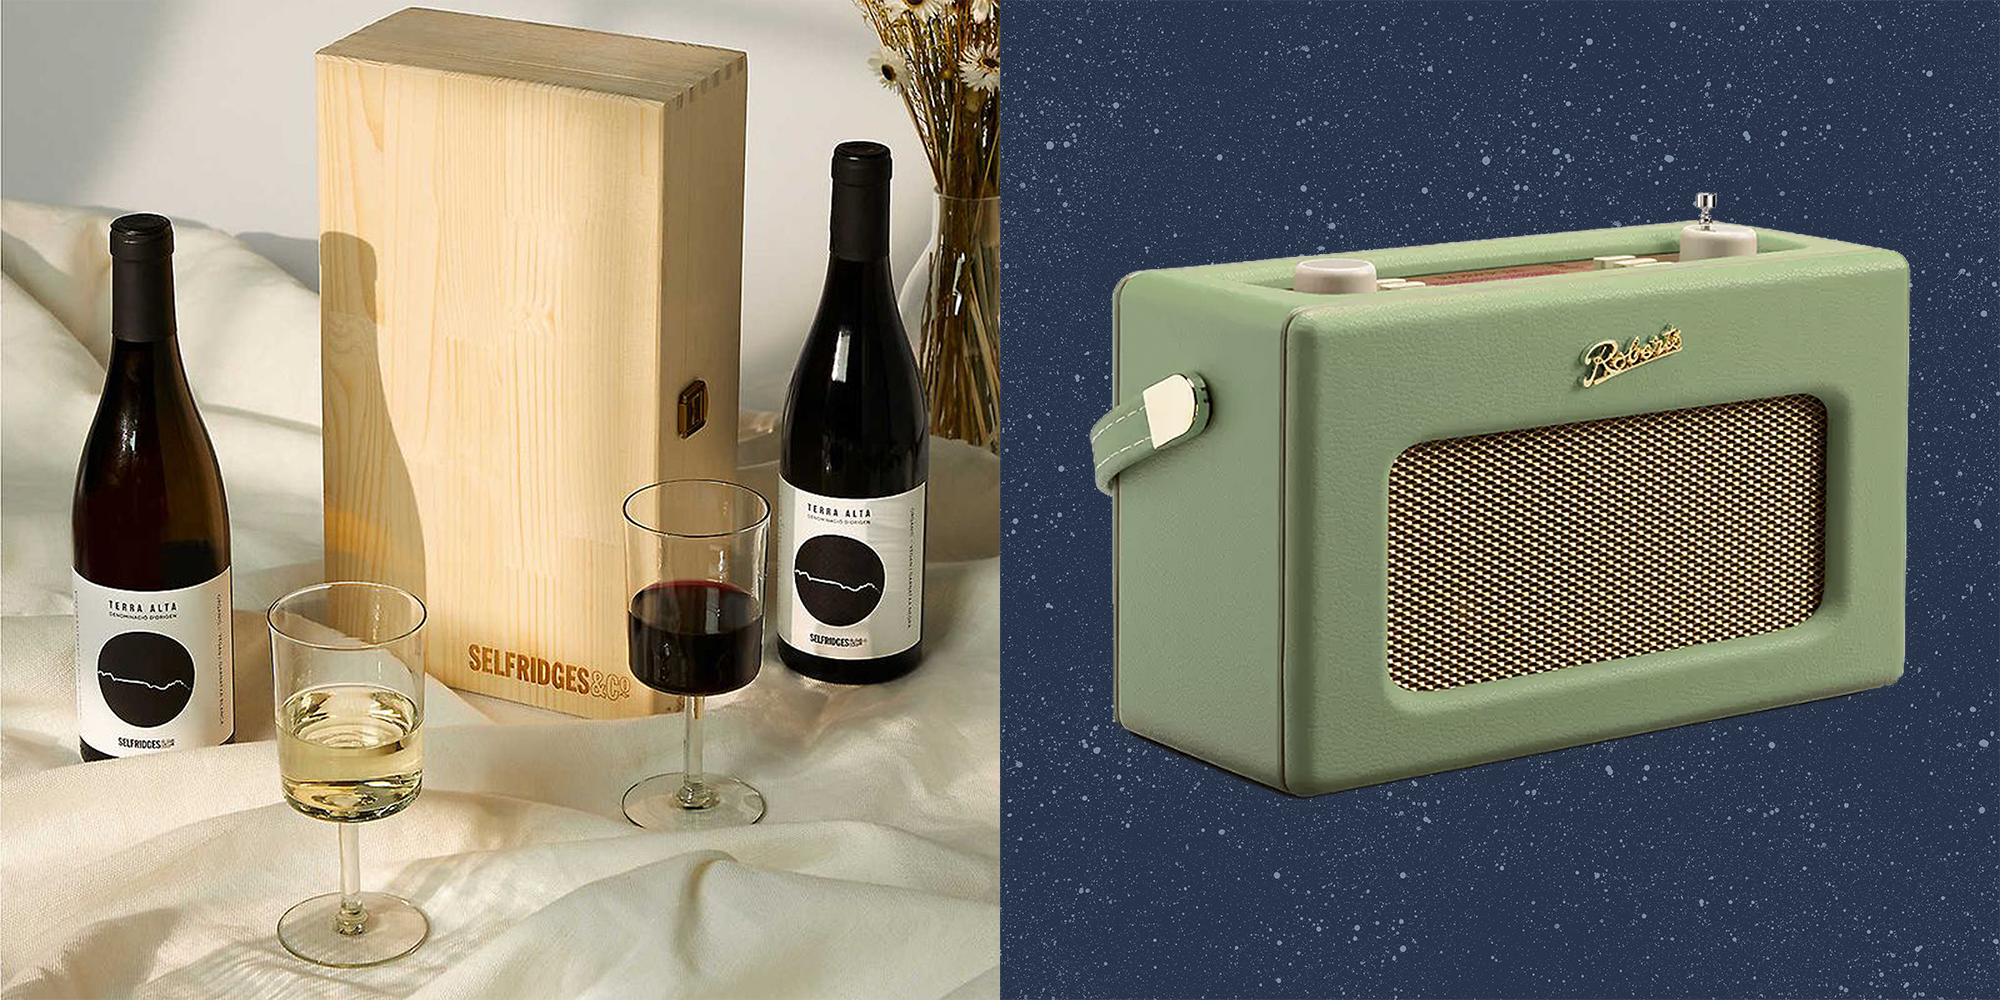 The 20 Best Gifts for Cool Couples (That Won't Break the Bank)